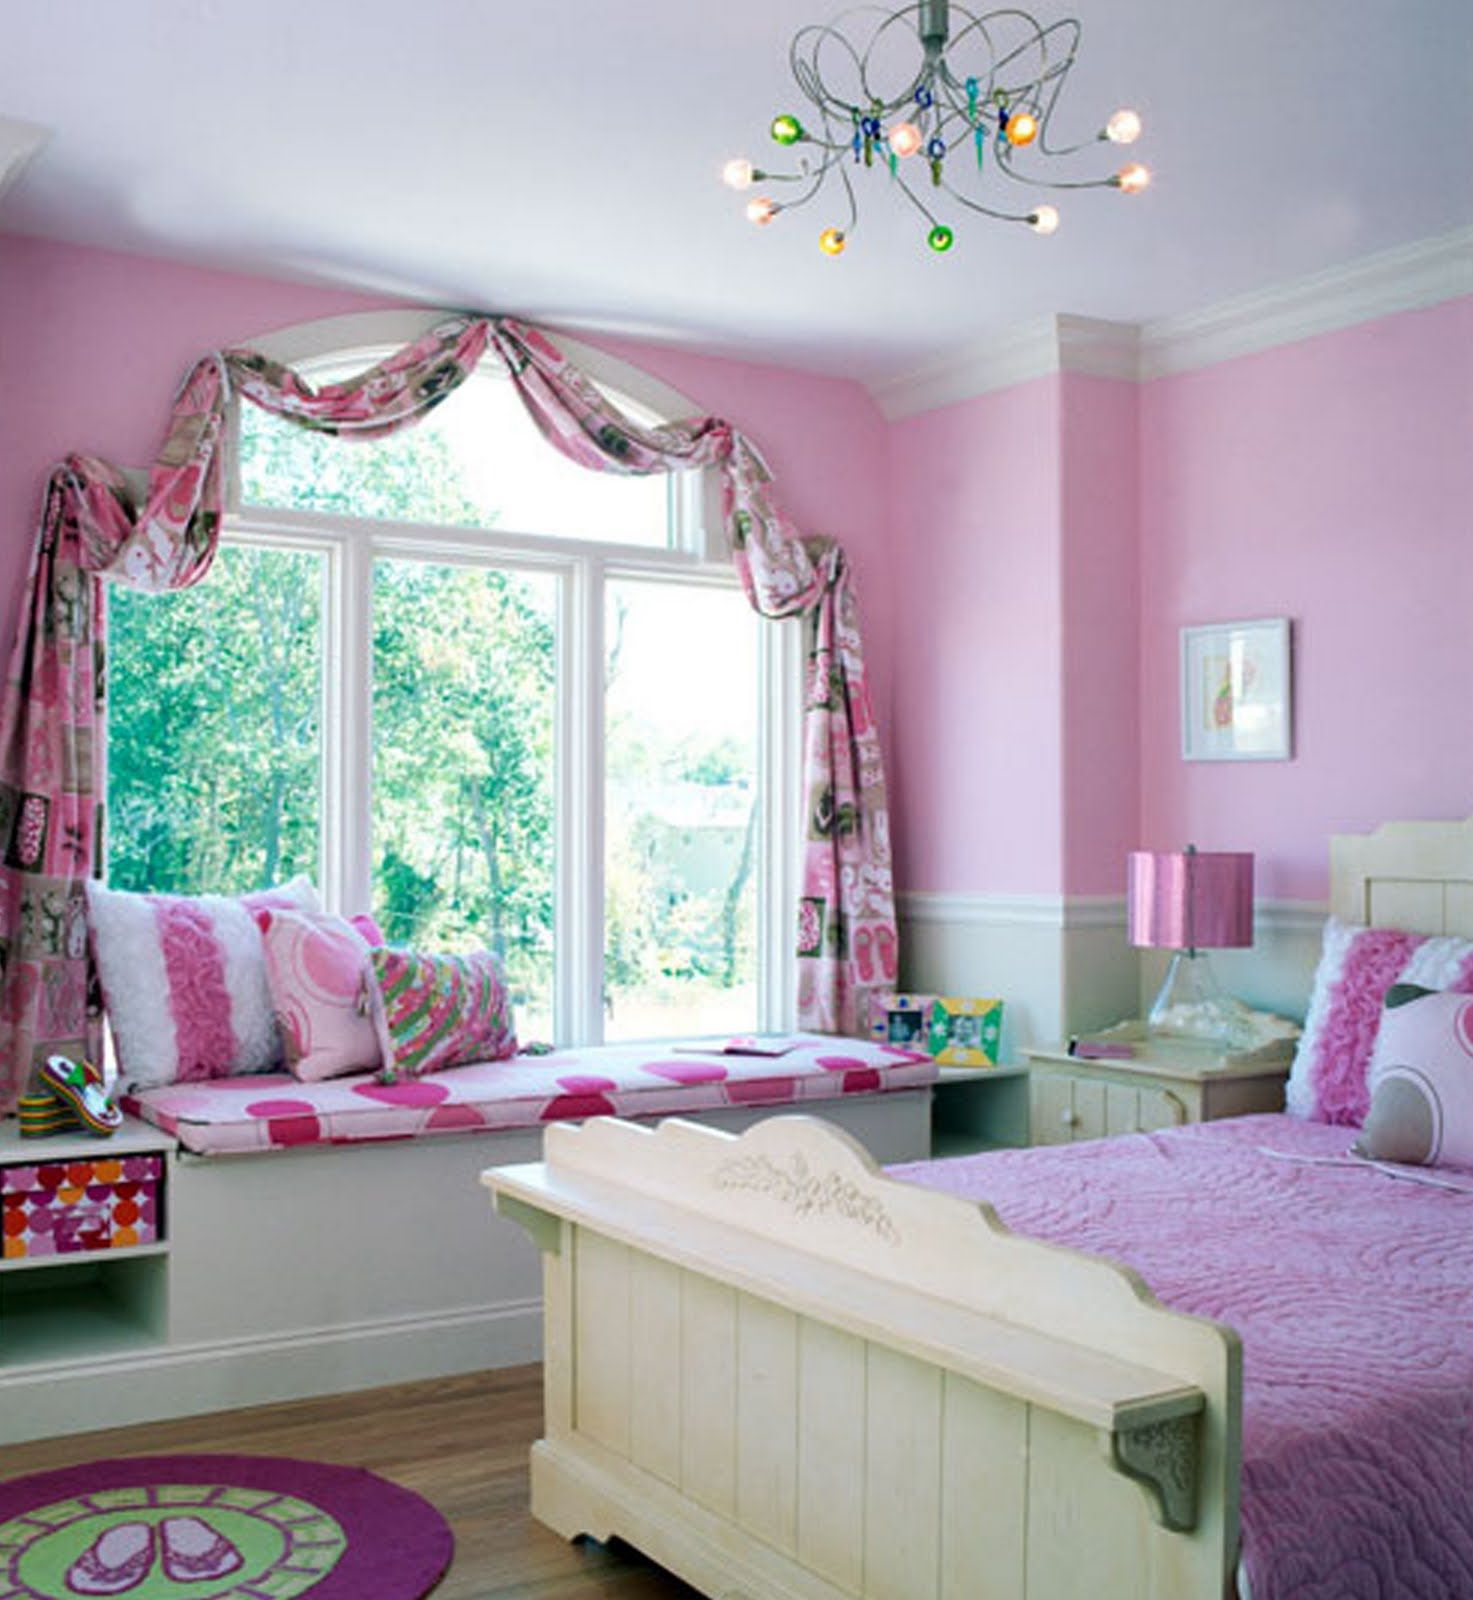 Bedroom ideas for teenage girls purple and pink - Excellent Girls Room Design Ideas With Creative Purple Floral